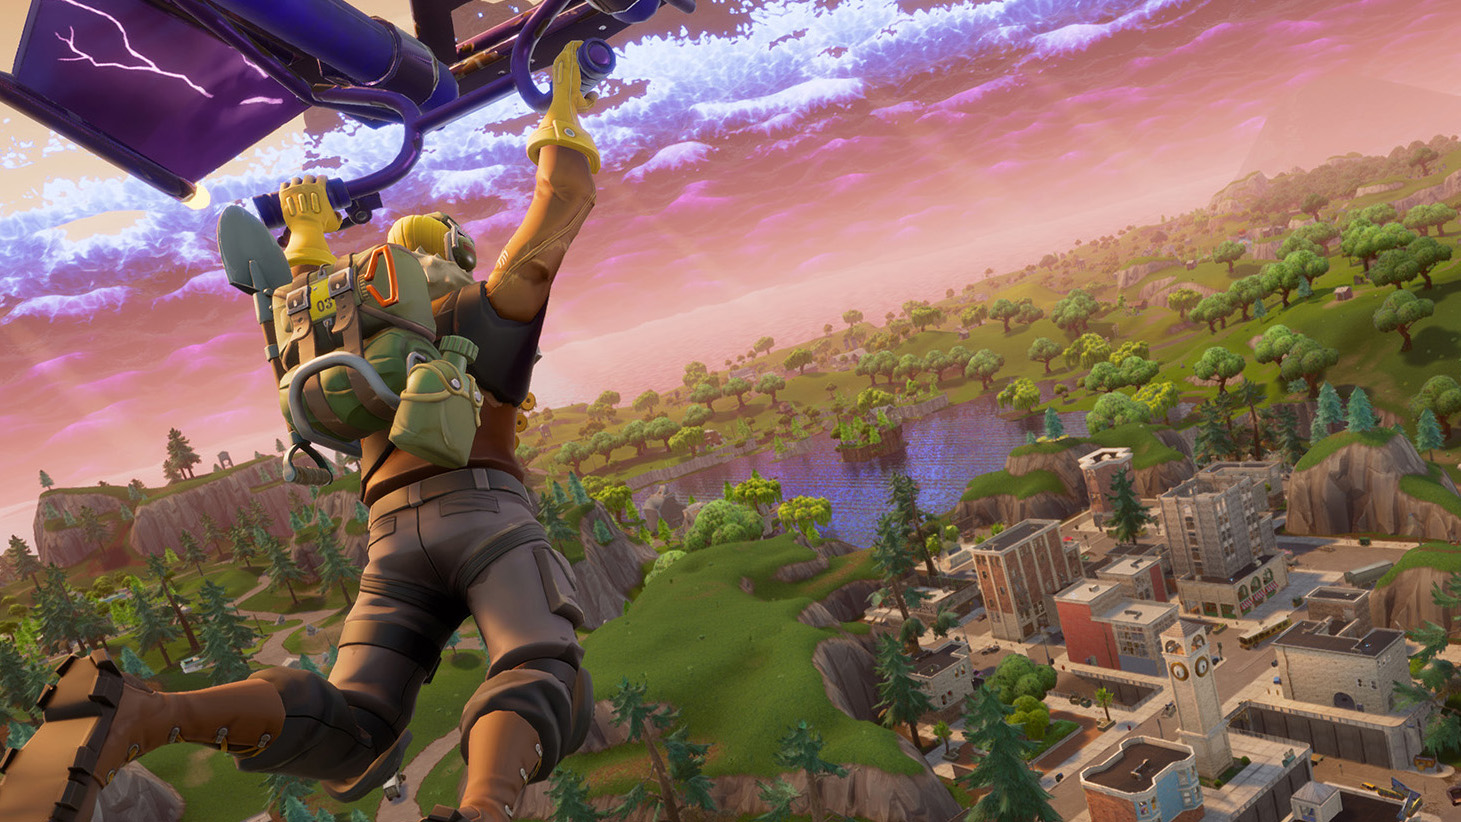 The best games with DLSS support: Fortnite